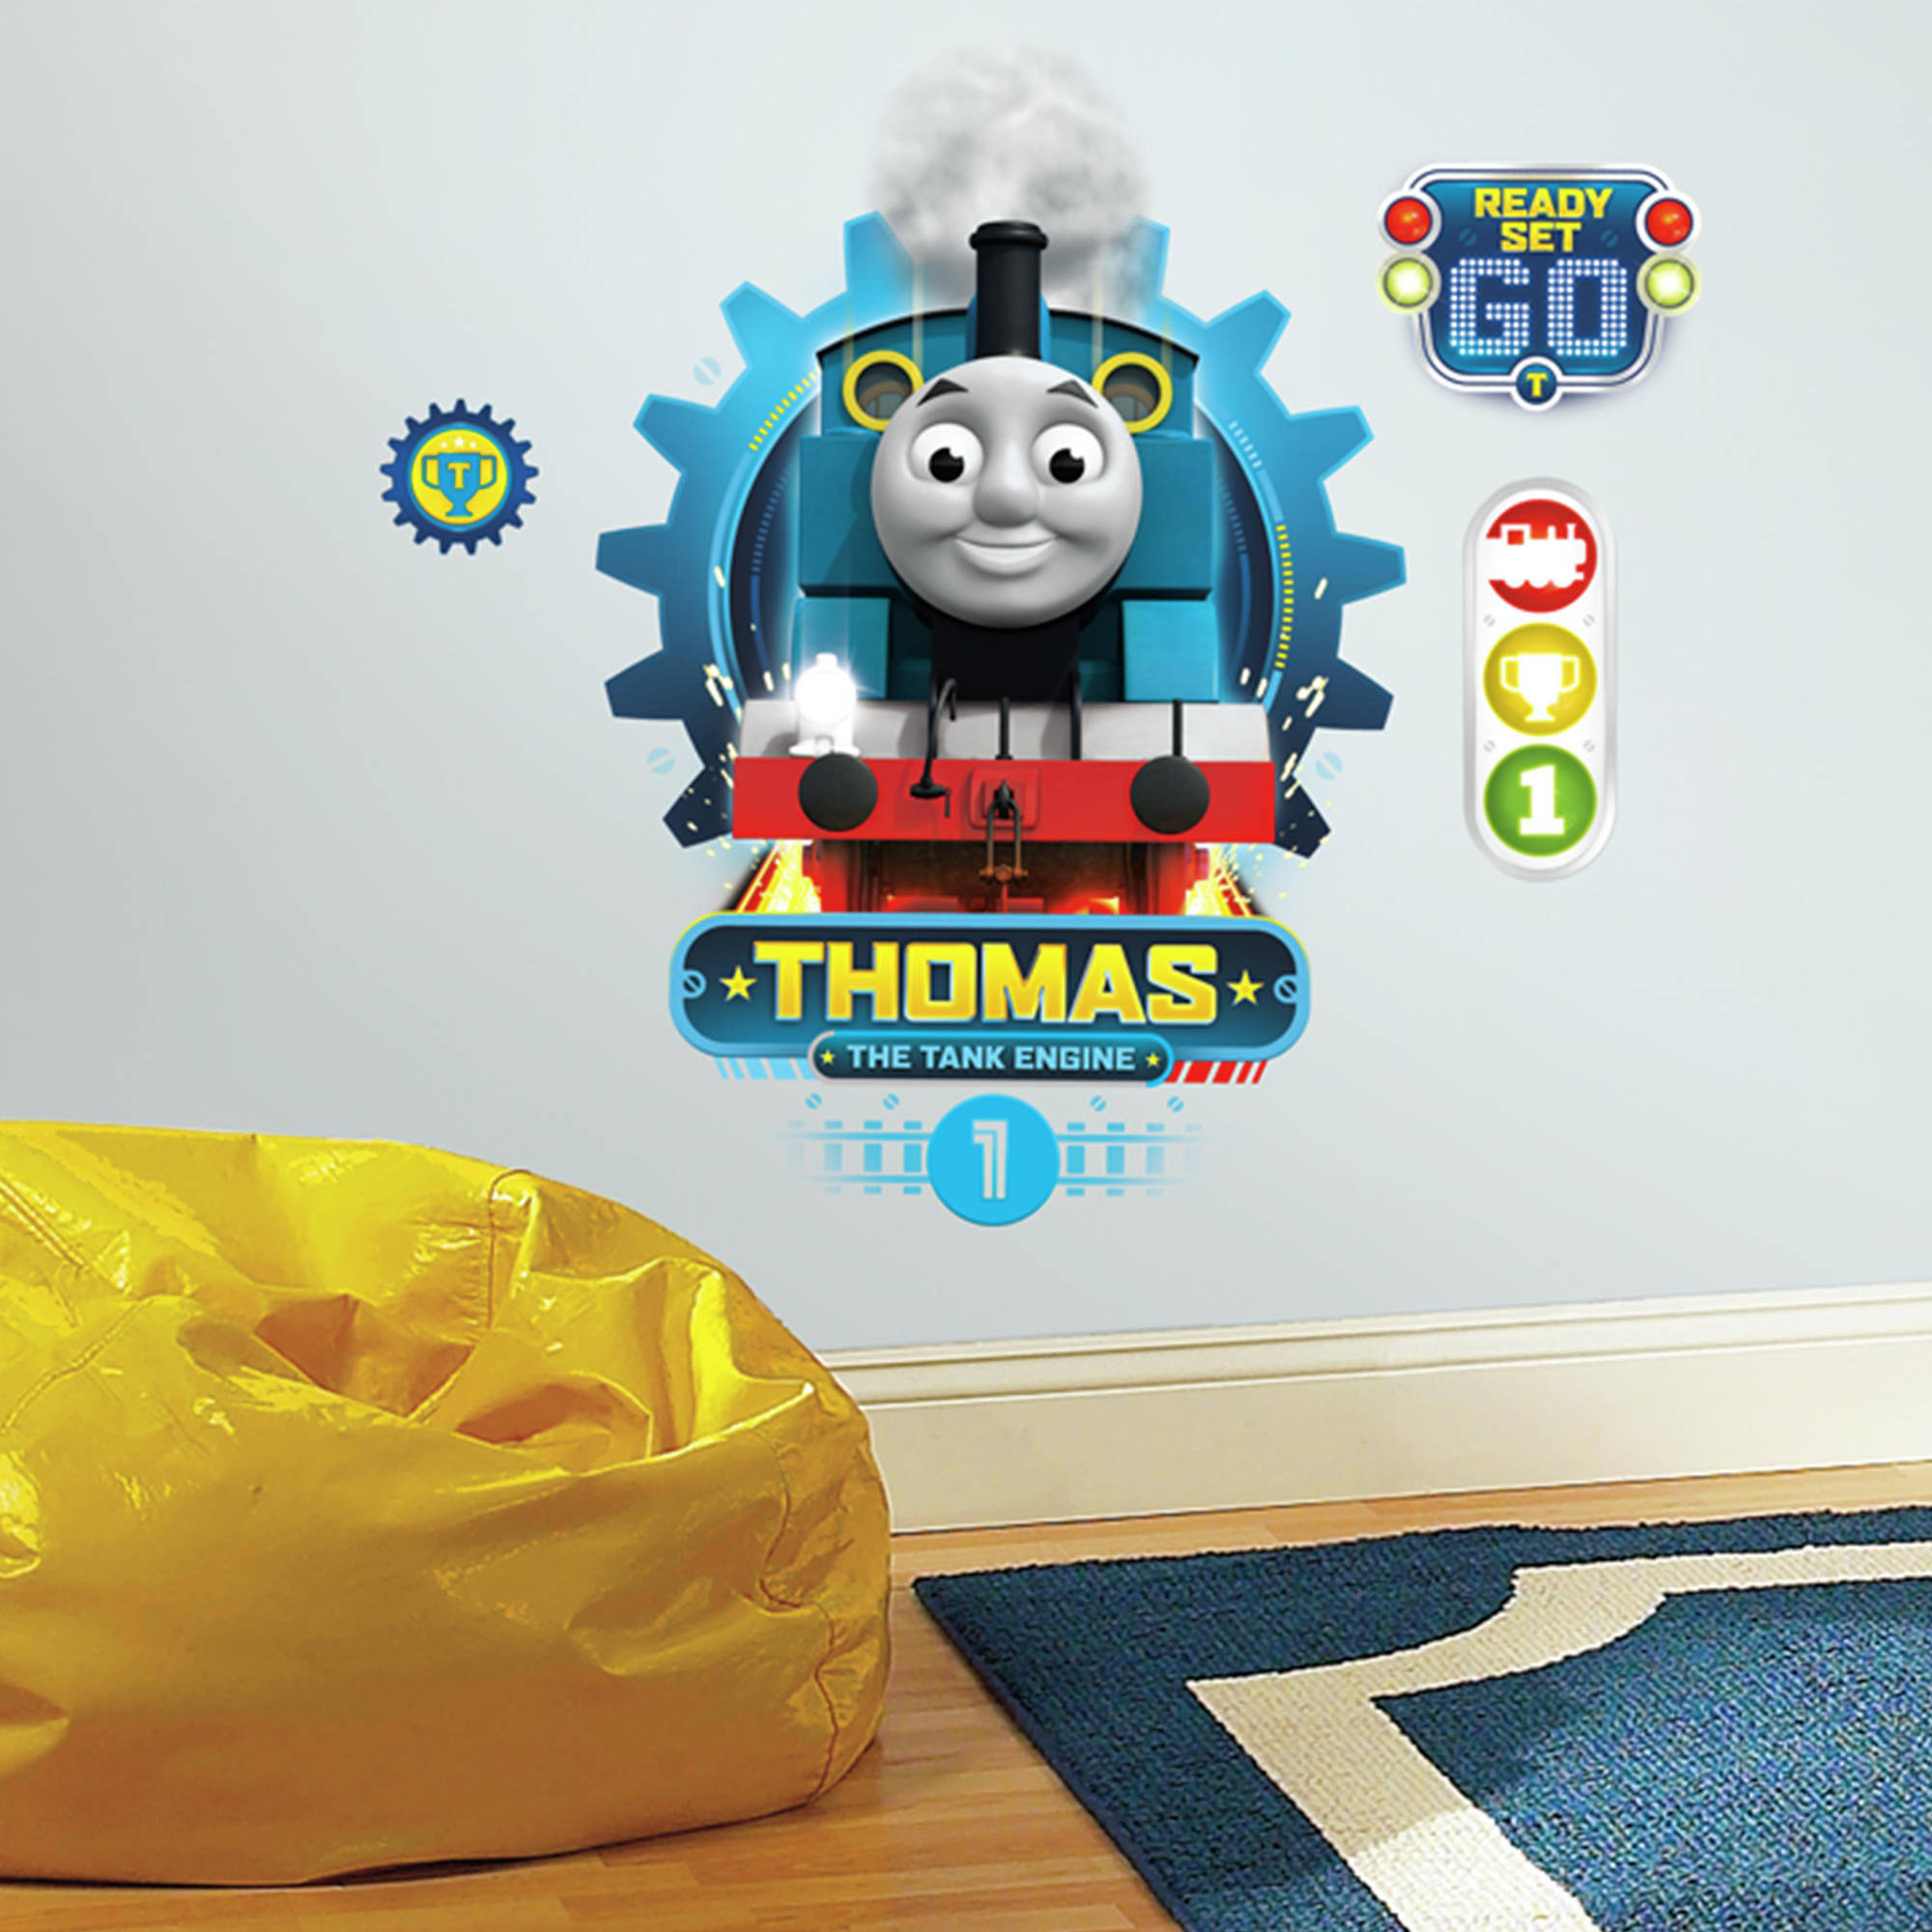 RoomMates Decor Thomas the Tank Engine Peel-and-Stick Wall Decals